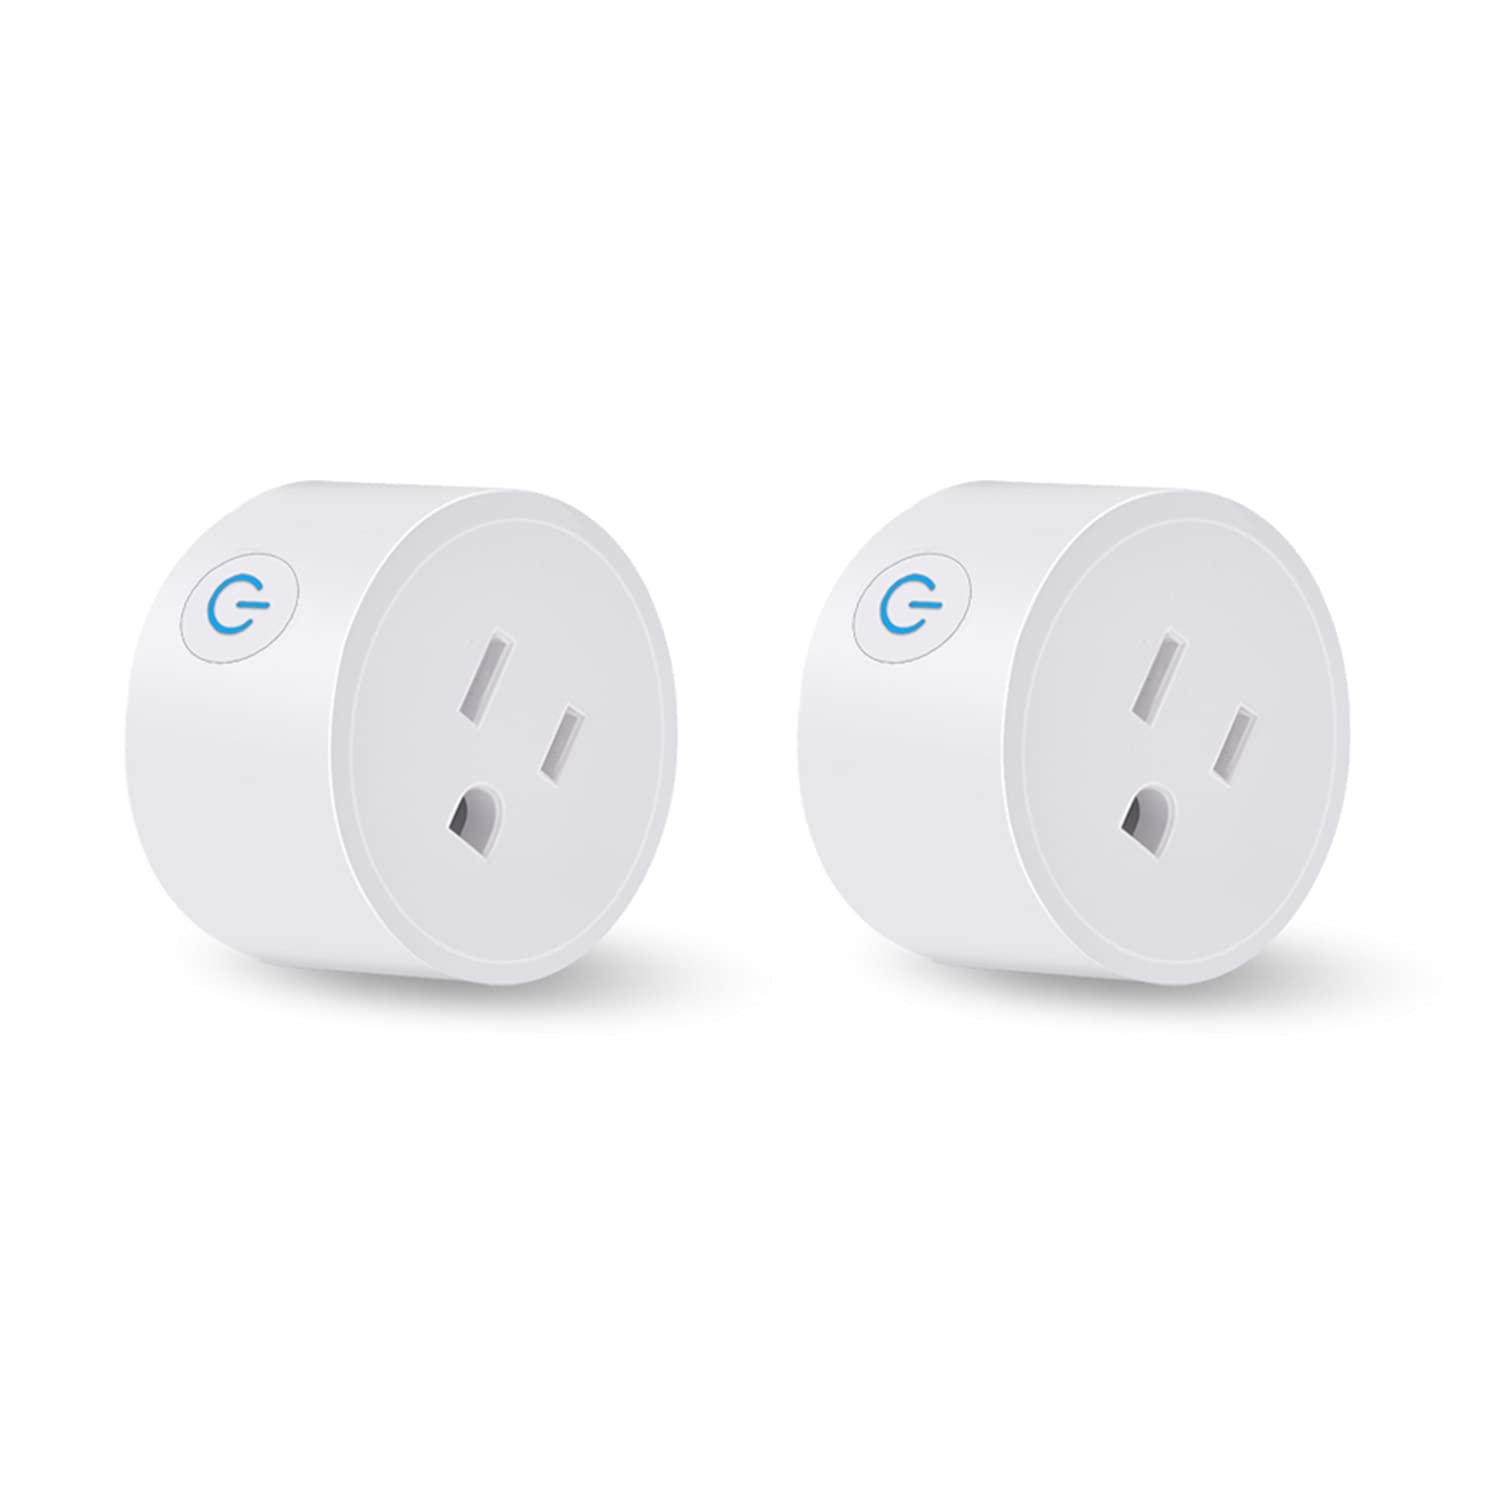 DoHome Smart Plug Smart WiFi Outlet Compatible with Amazon Alexa and Google Assistant and Apple Homekit Remote Control Smart Socket with Timer Function No Hub Required ROHS and FCC Certified